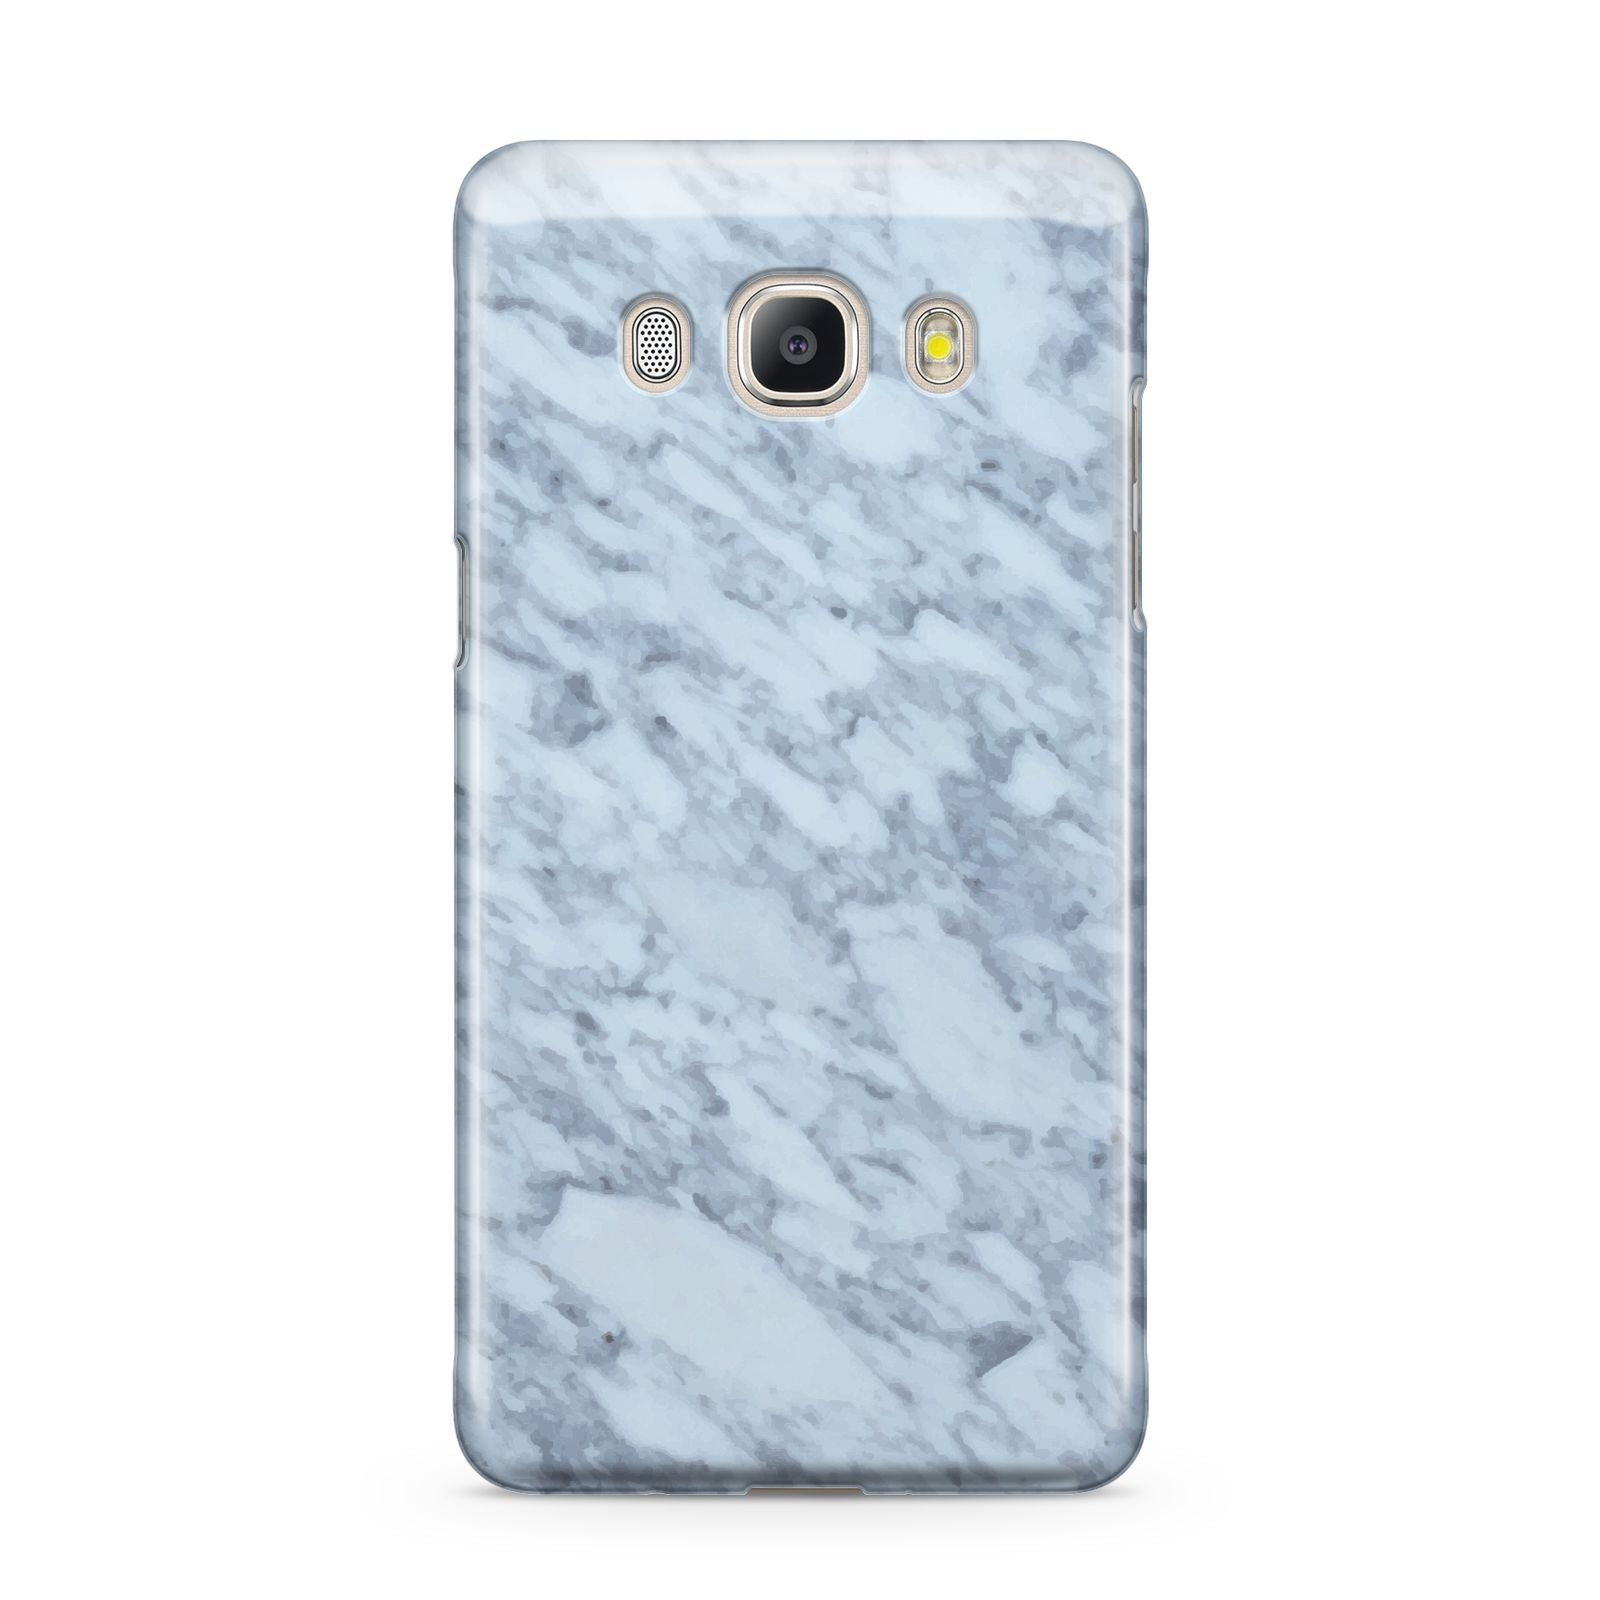 Faux Marble Grey 2 Samsung Galaxy J5 2016 Case